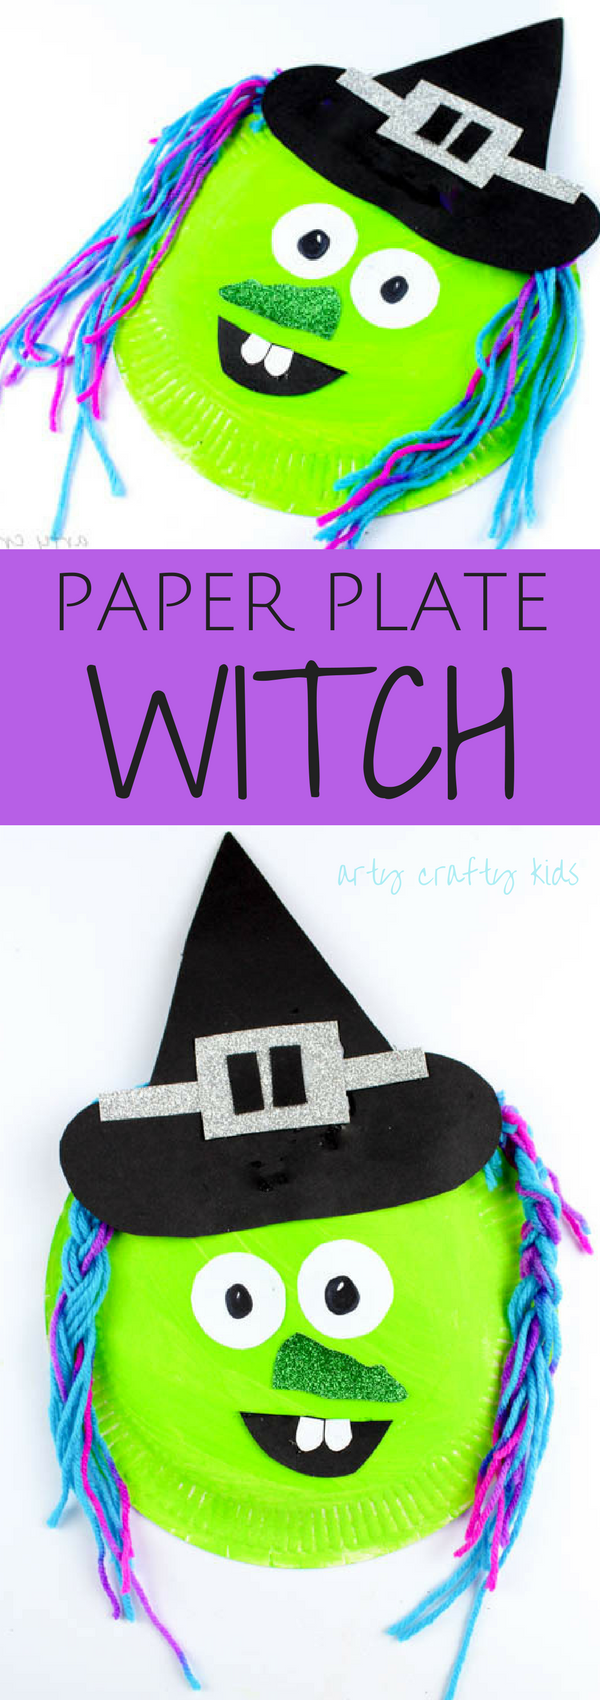 Paper Plate Witch | Arty Crafty Kids